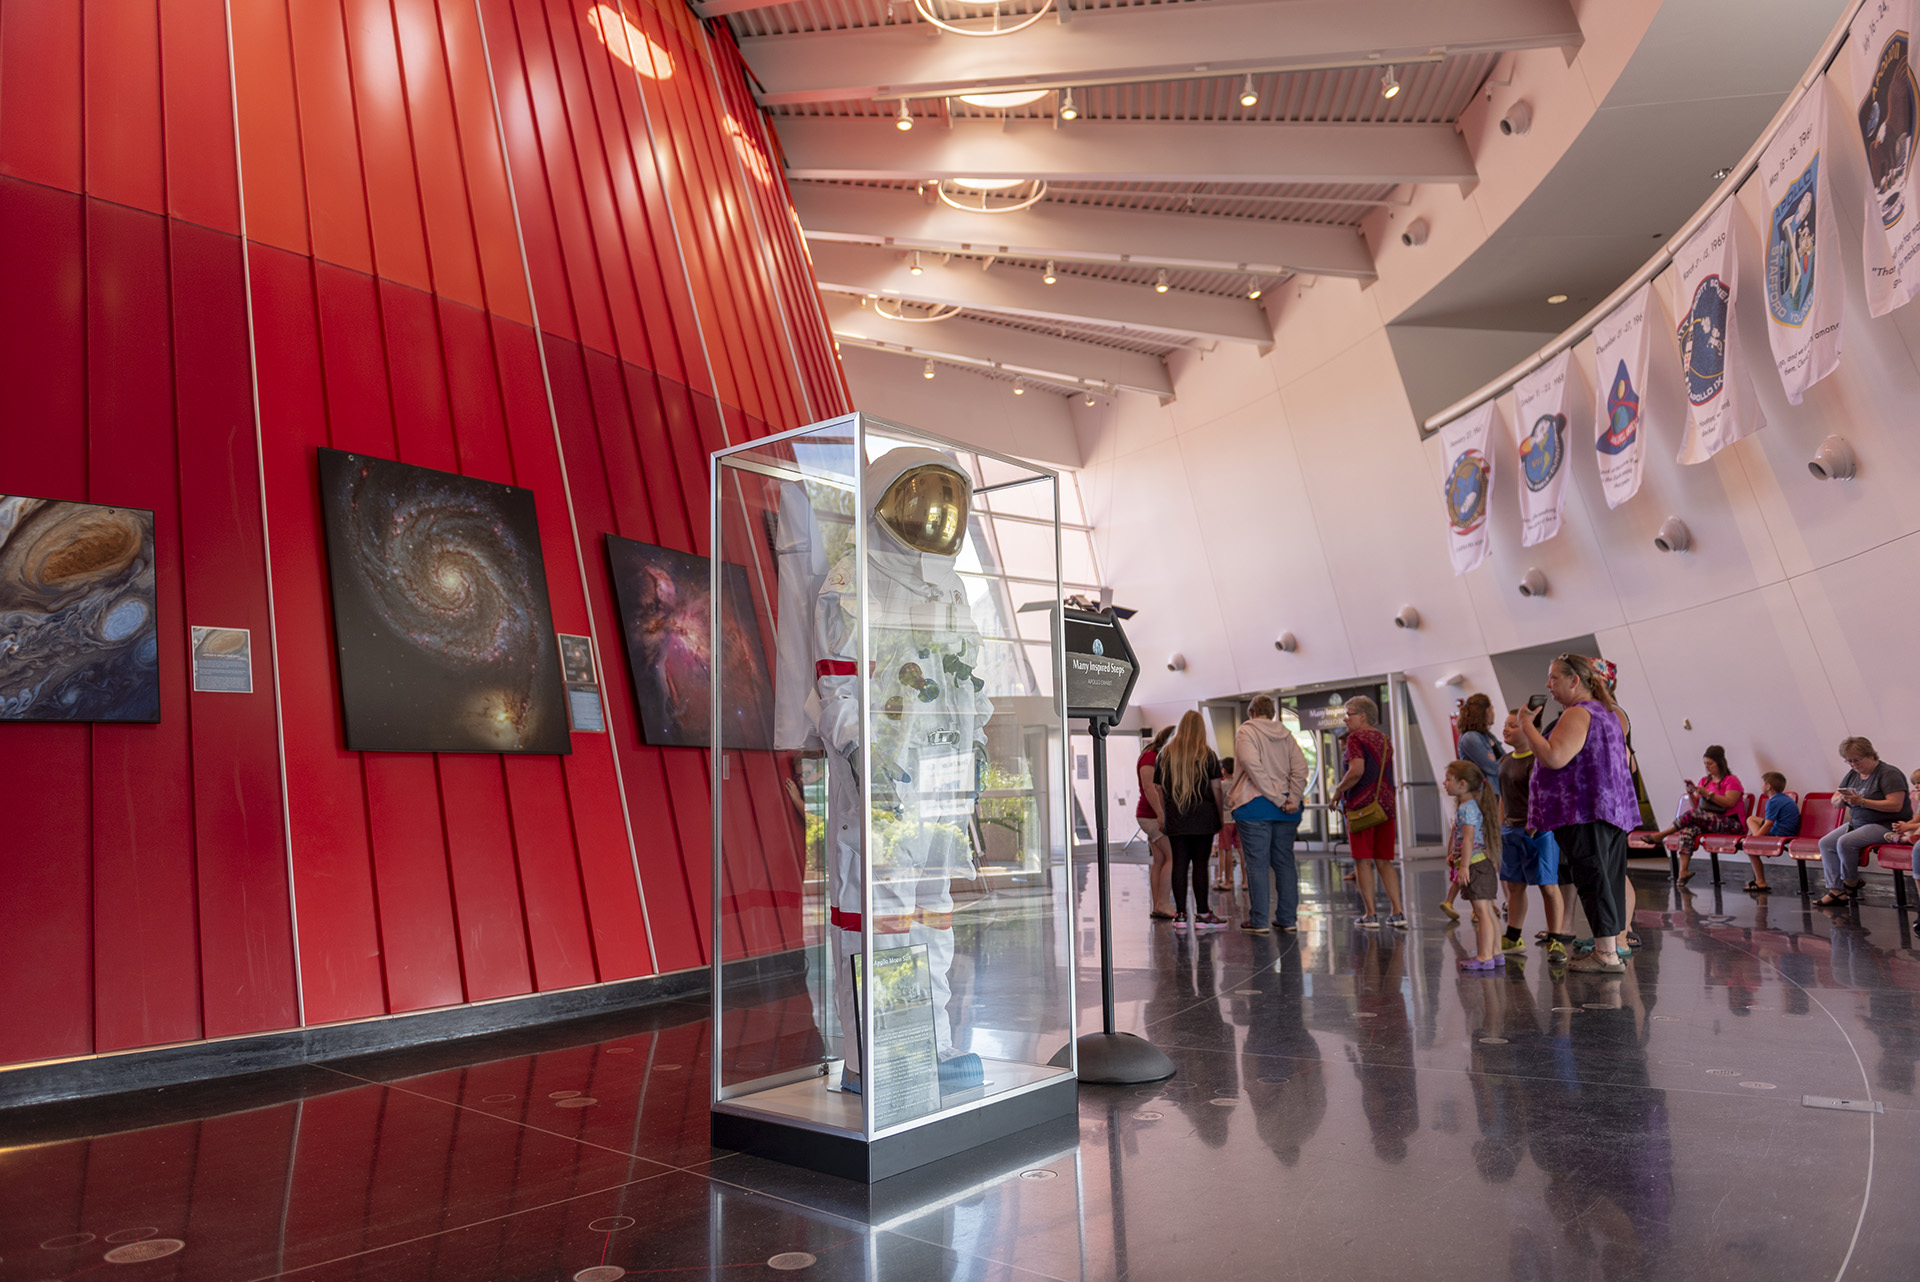 The Planetarium was designed around the metaphors of space and exploration.